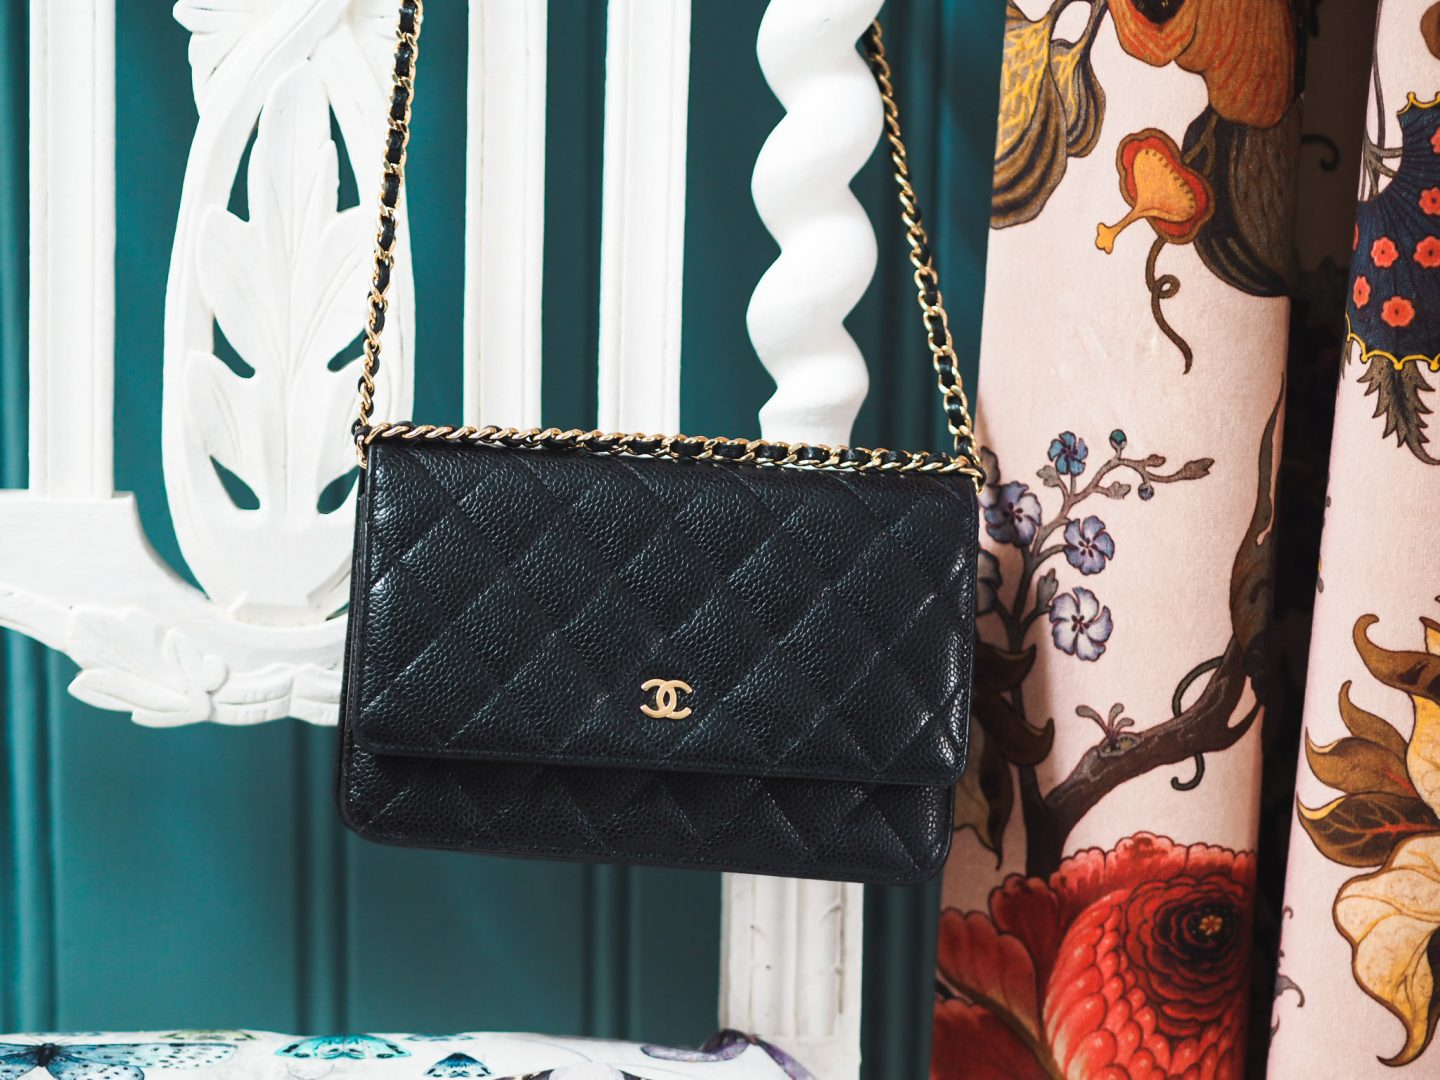 Mini Vs Woc Five Reasons Why You Should Buy The Chanel Woc Fashion